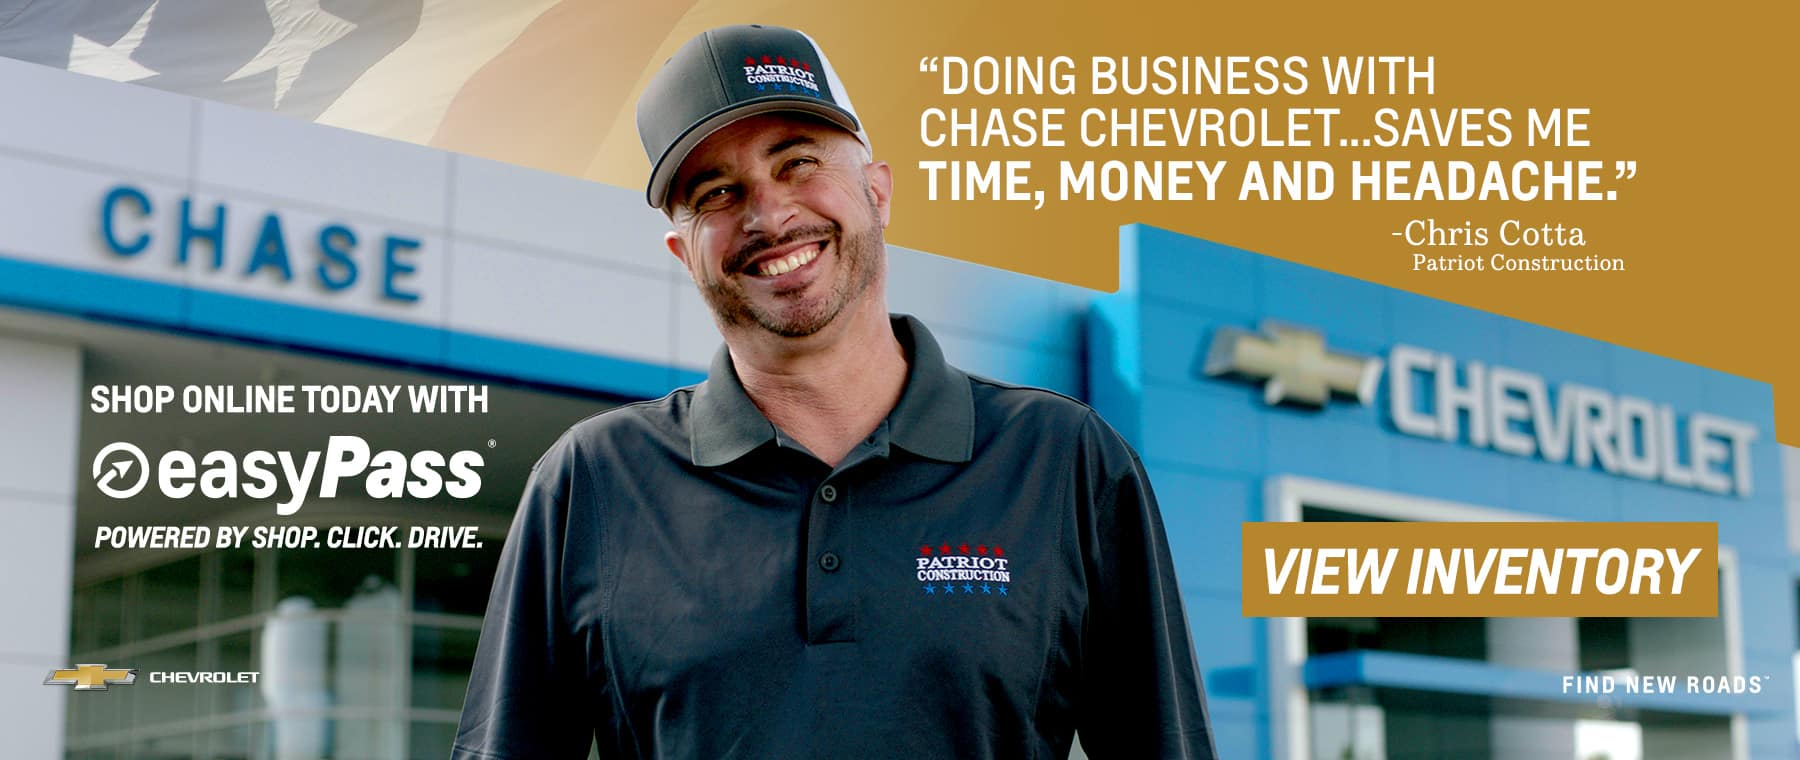 Doing Business With Chase Chevrolet Saves Me Time, Money, And Headache